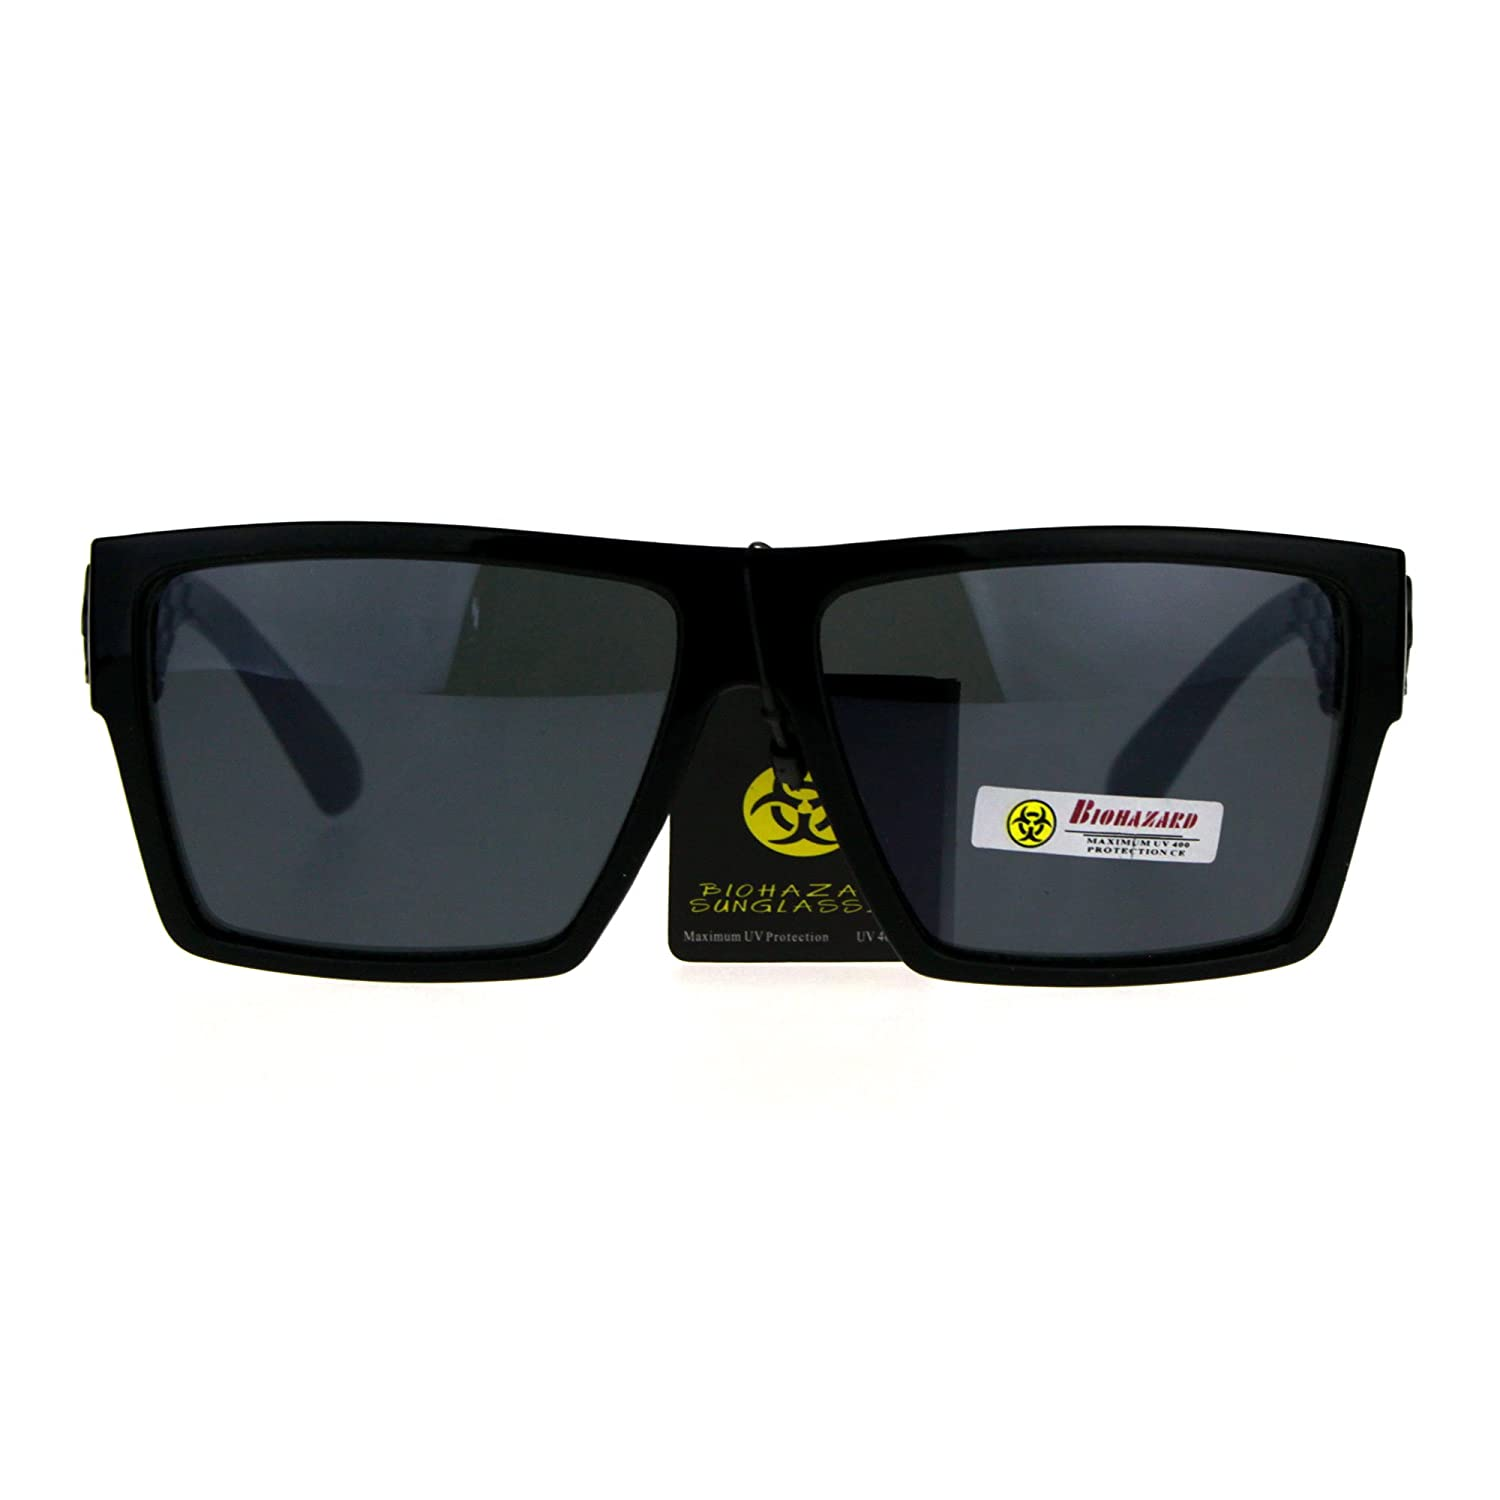 3be3106e688 Amazon.com  Biohazard Skater Mens Flat Top Squared Rectangular Gangster  Sunglasses All Black  Clothing